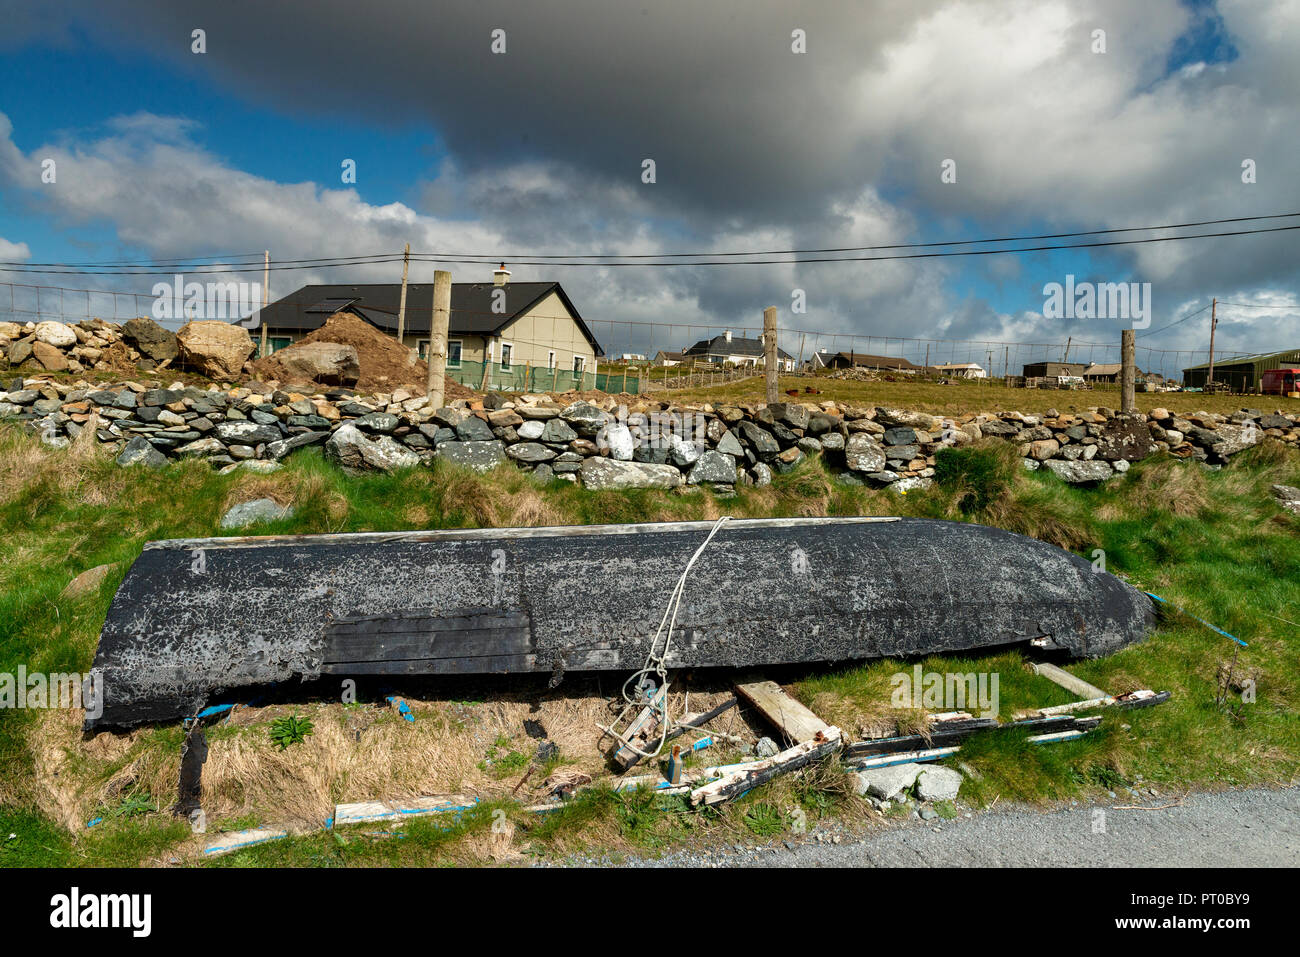 Currach,  Currag .  Old fishing boast - IRELAND, Connemara,  Inishboffin island, Inis Bo Finne   (Island of the White Cow) - Stock Image